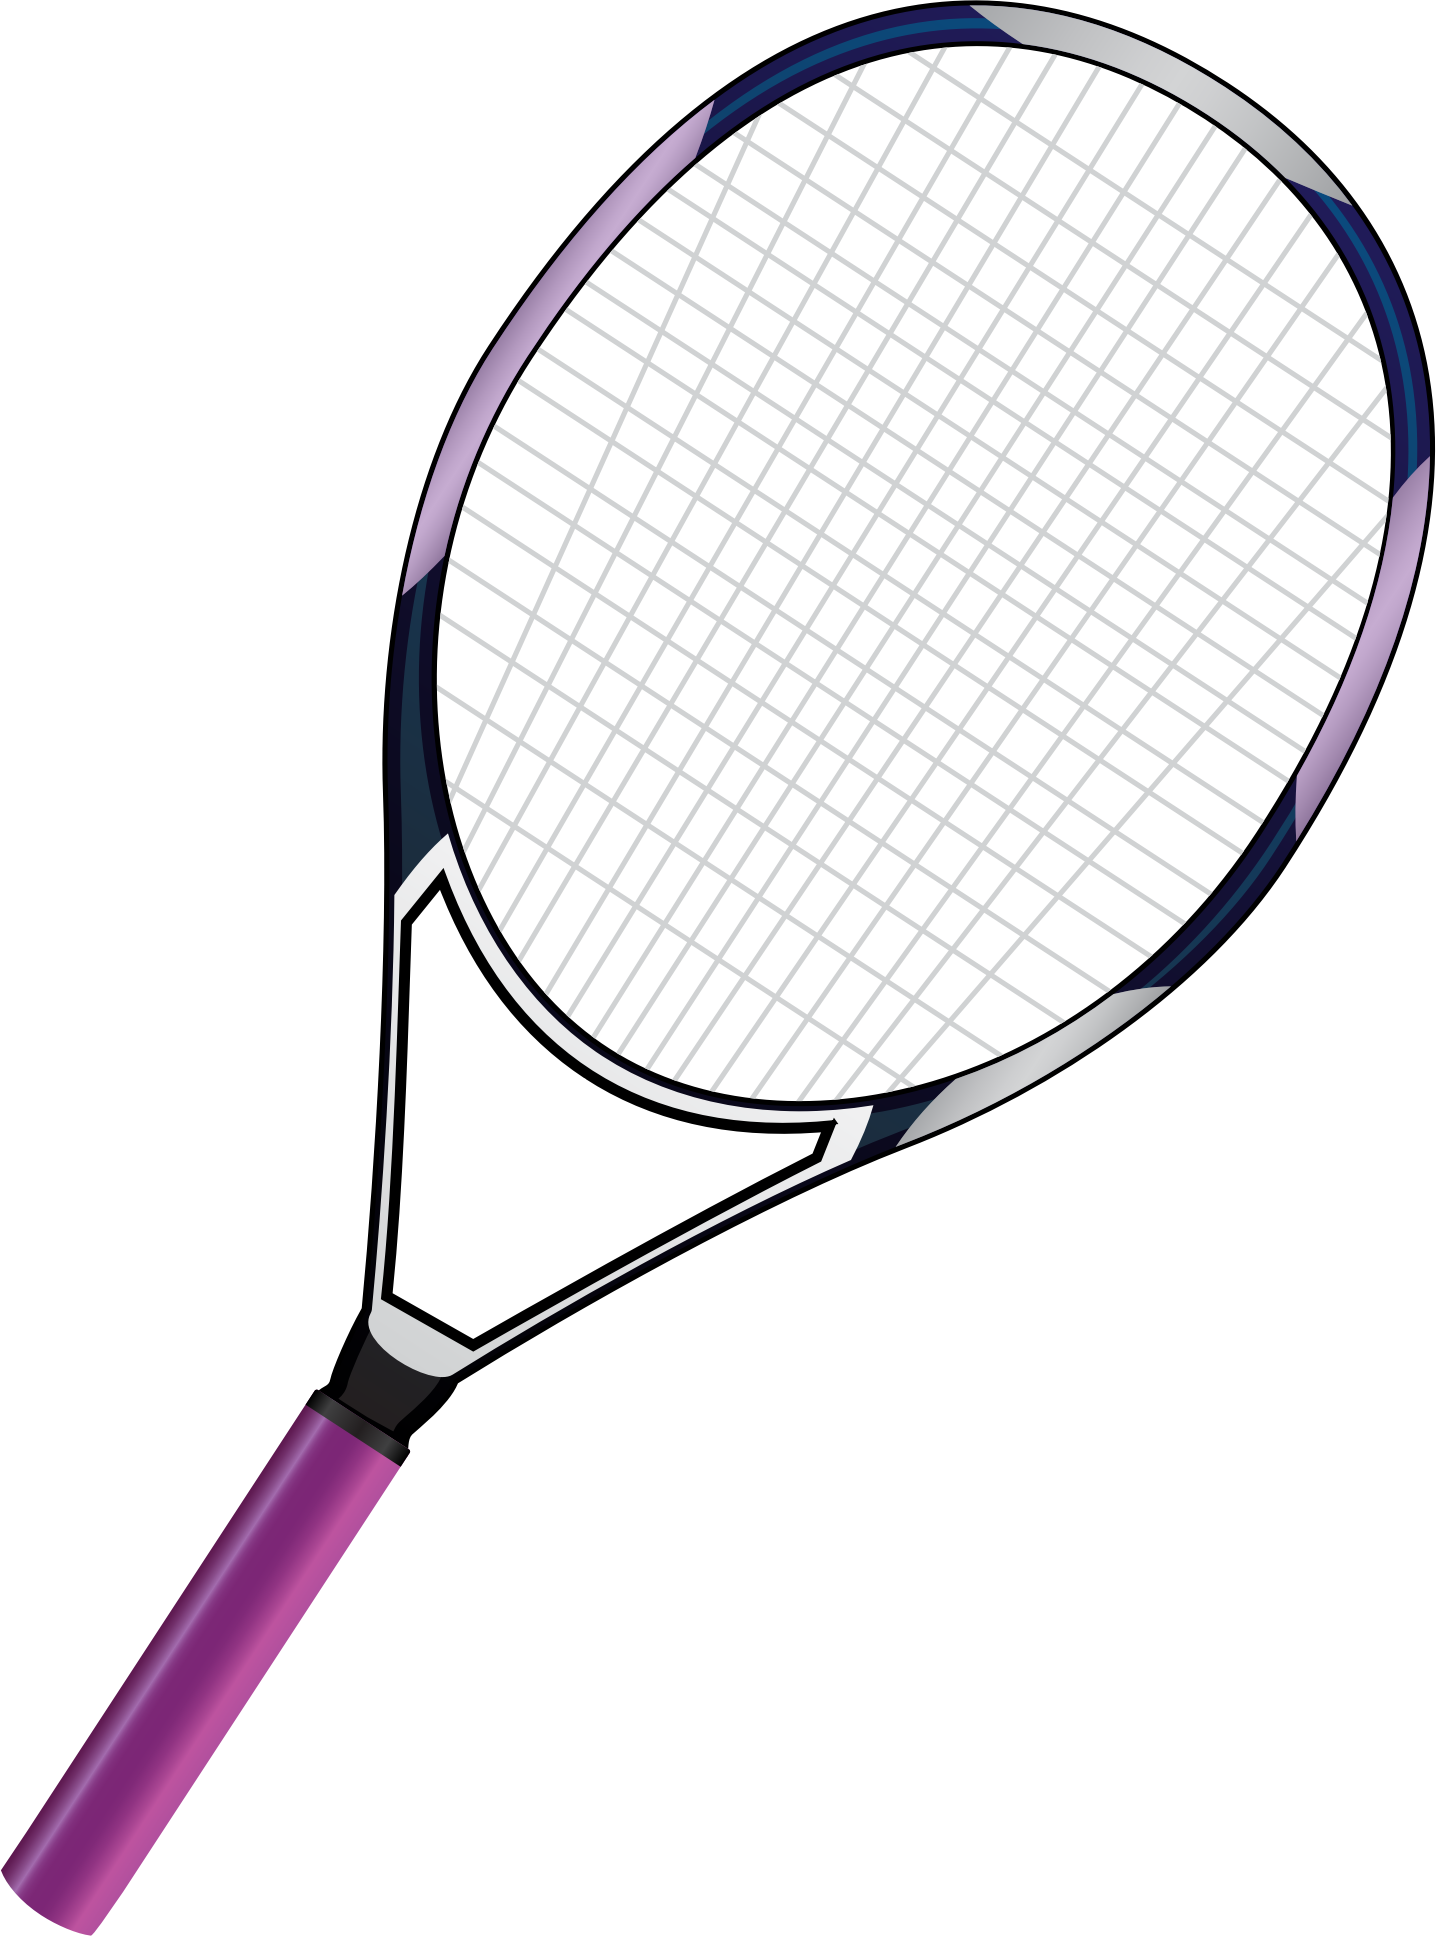 Racket clipart pink tennis racket. Cilpart amazing design racquet picture royalty free stock